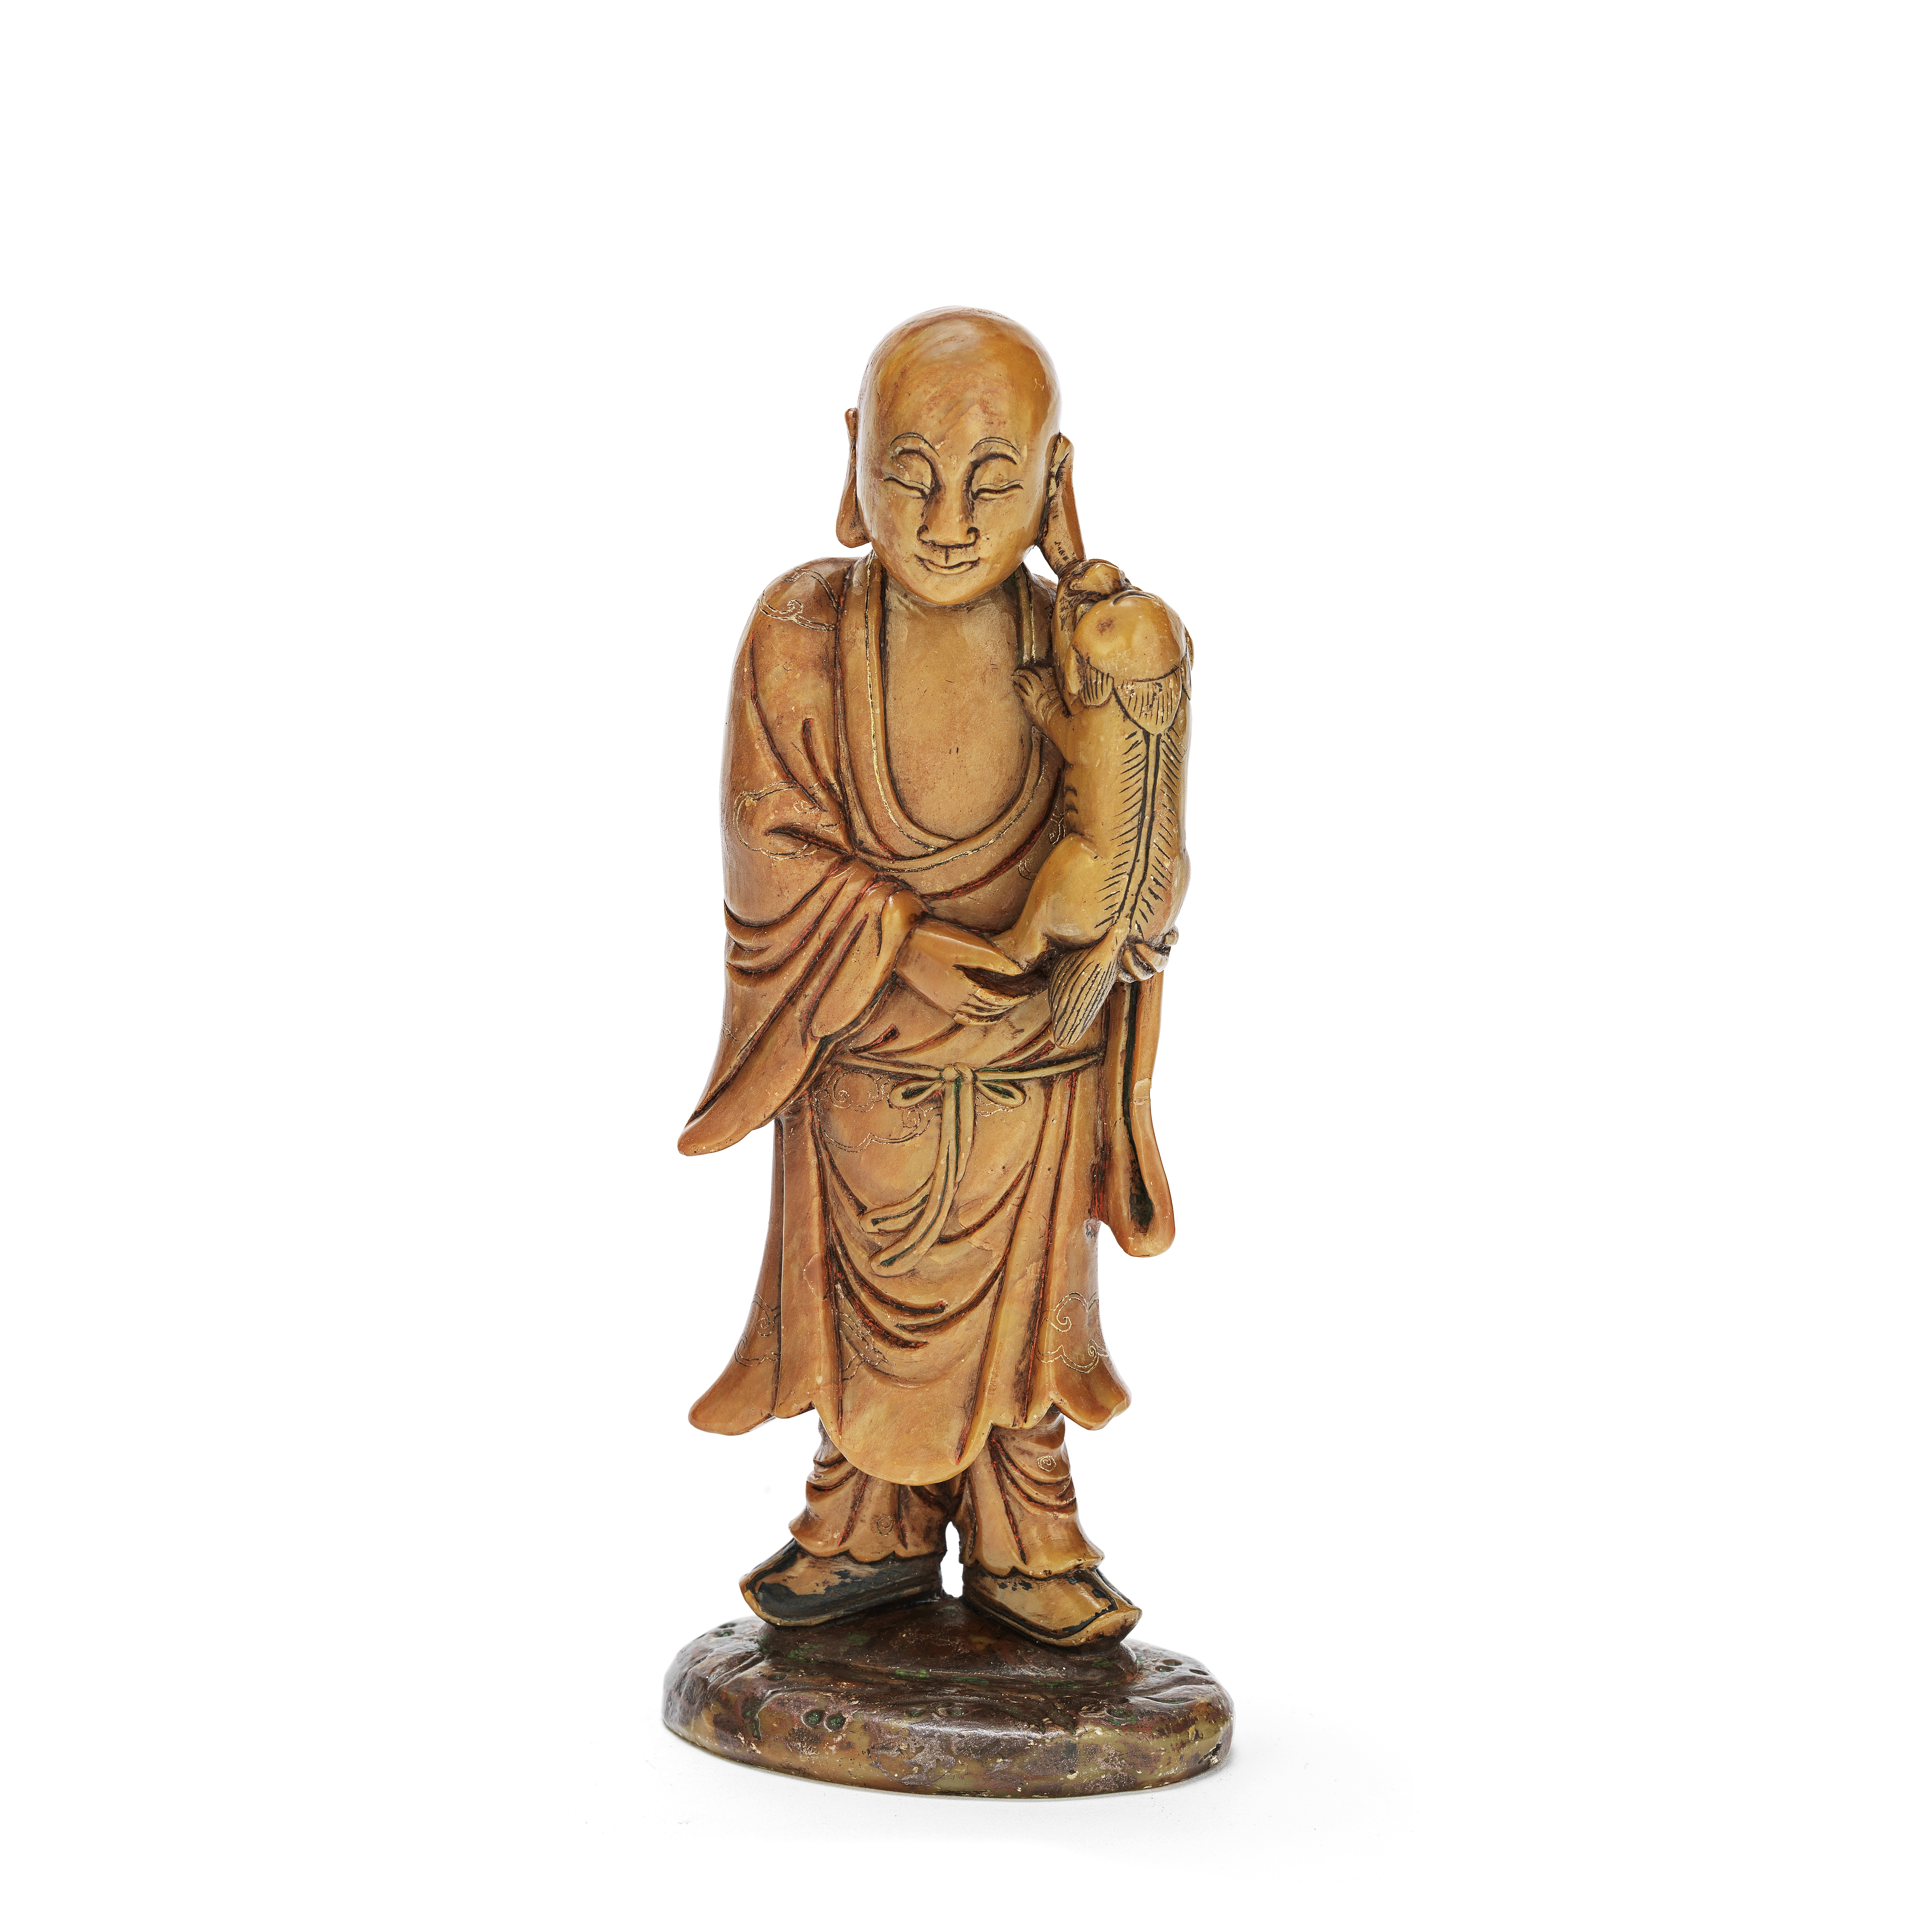 A SOAPSTONE FIGURE OF A MONK 19th century